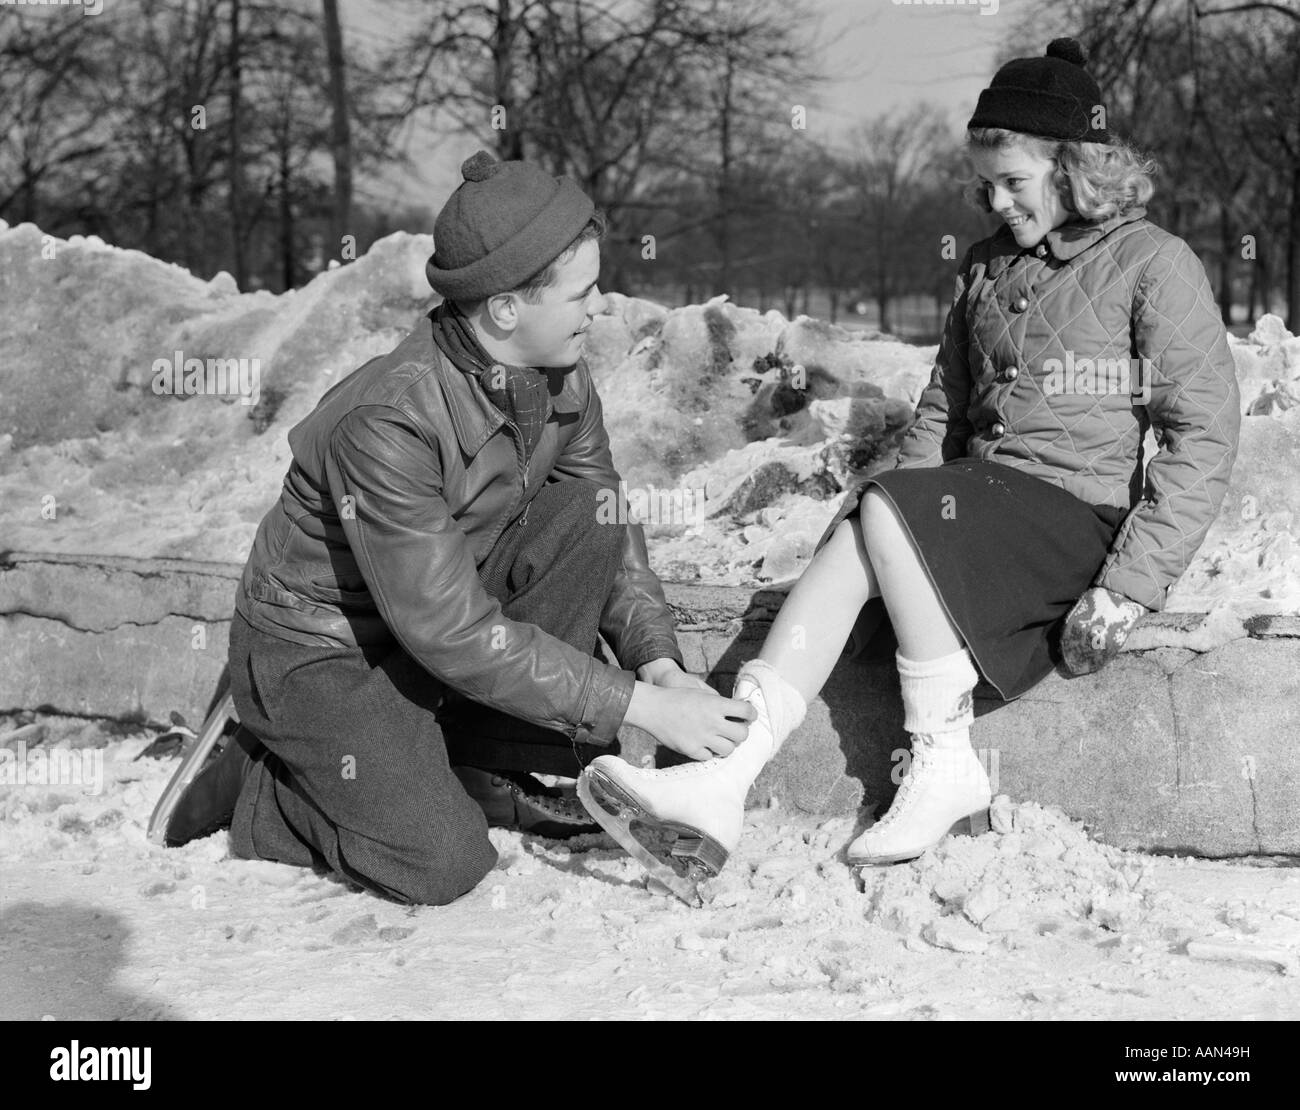 1930s 1940s TEENAGE COUPLE IN KNIT CAPS & WINTER JACKETS KNEELING BOY TYING ICE SKATES FOR GIRL - Stock Image